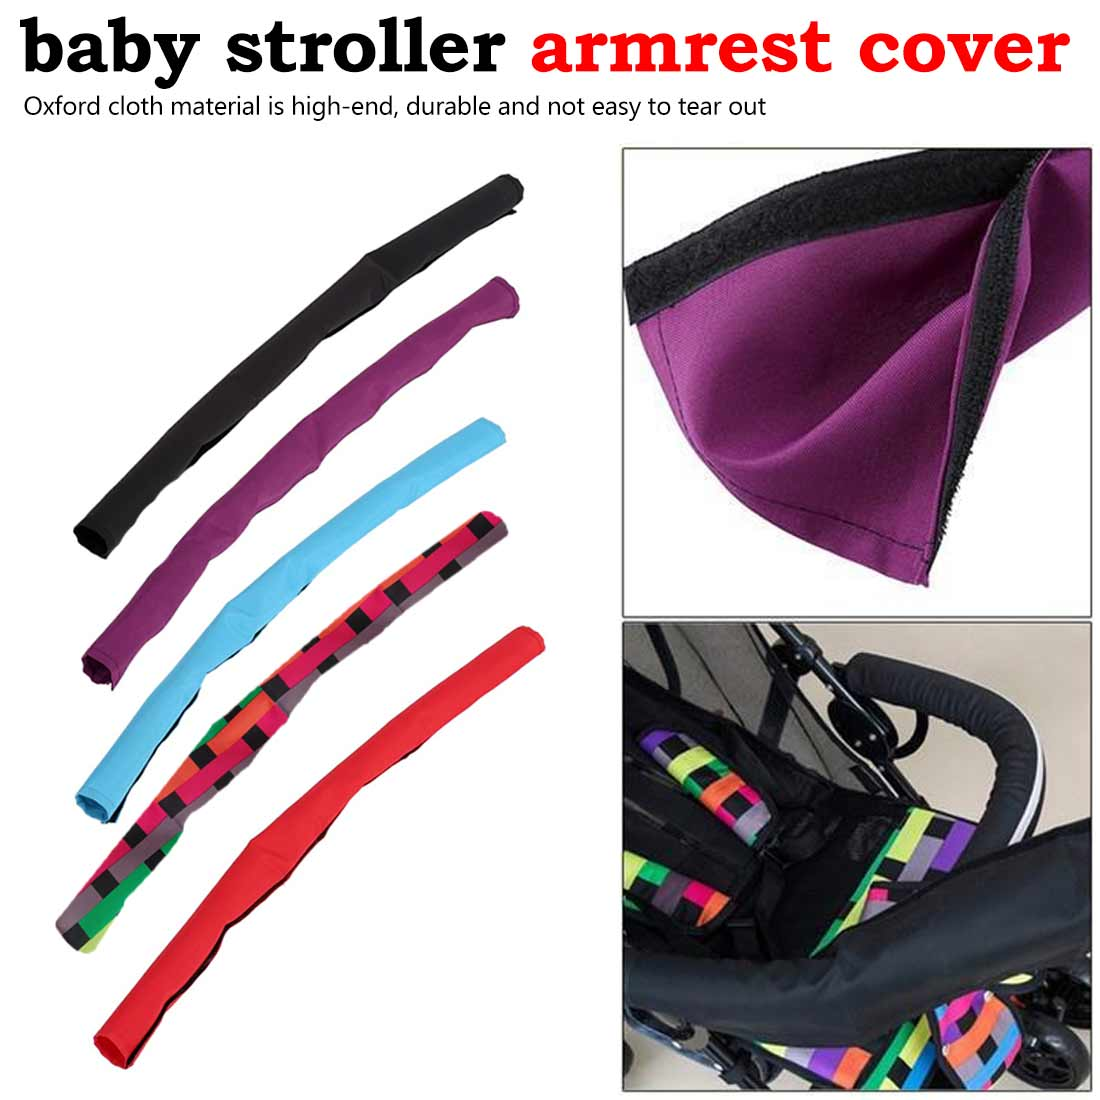 1pcs  Detachable Health Pram  Accessories Stroller Soft General Armrest Replace Clean Cover Cloth Case Washable Baby Stroller